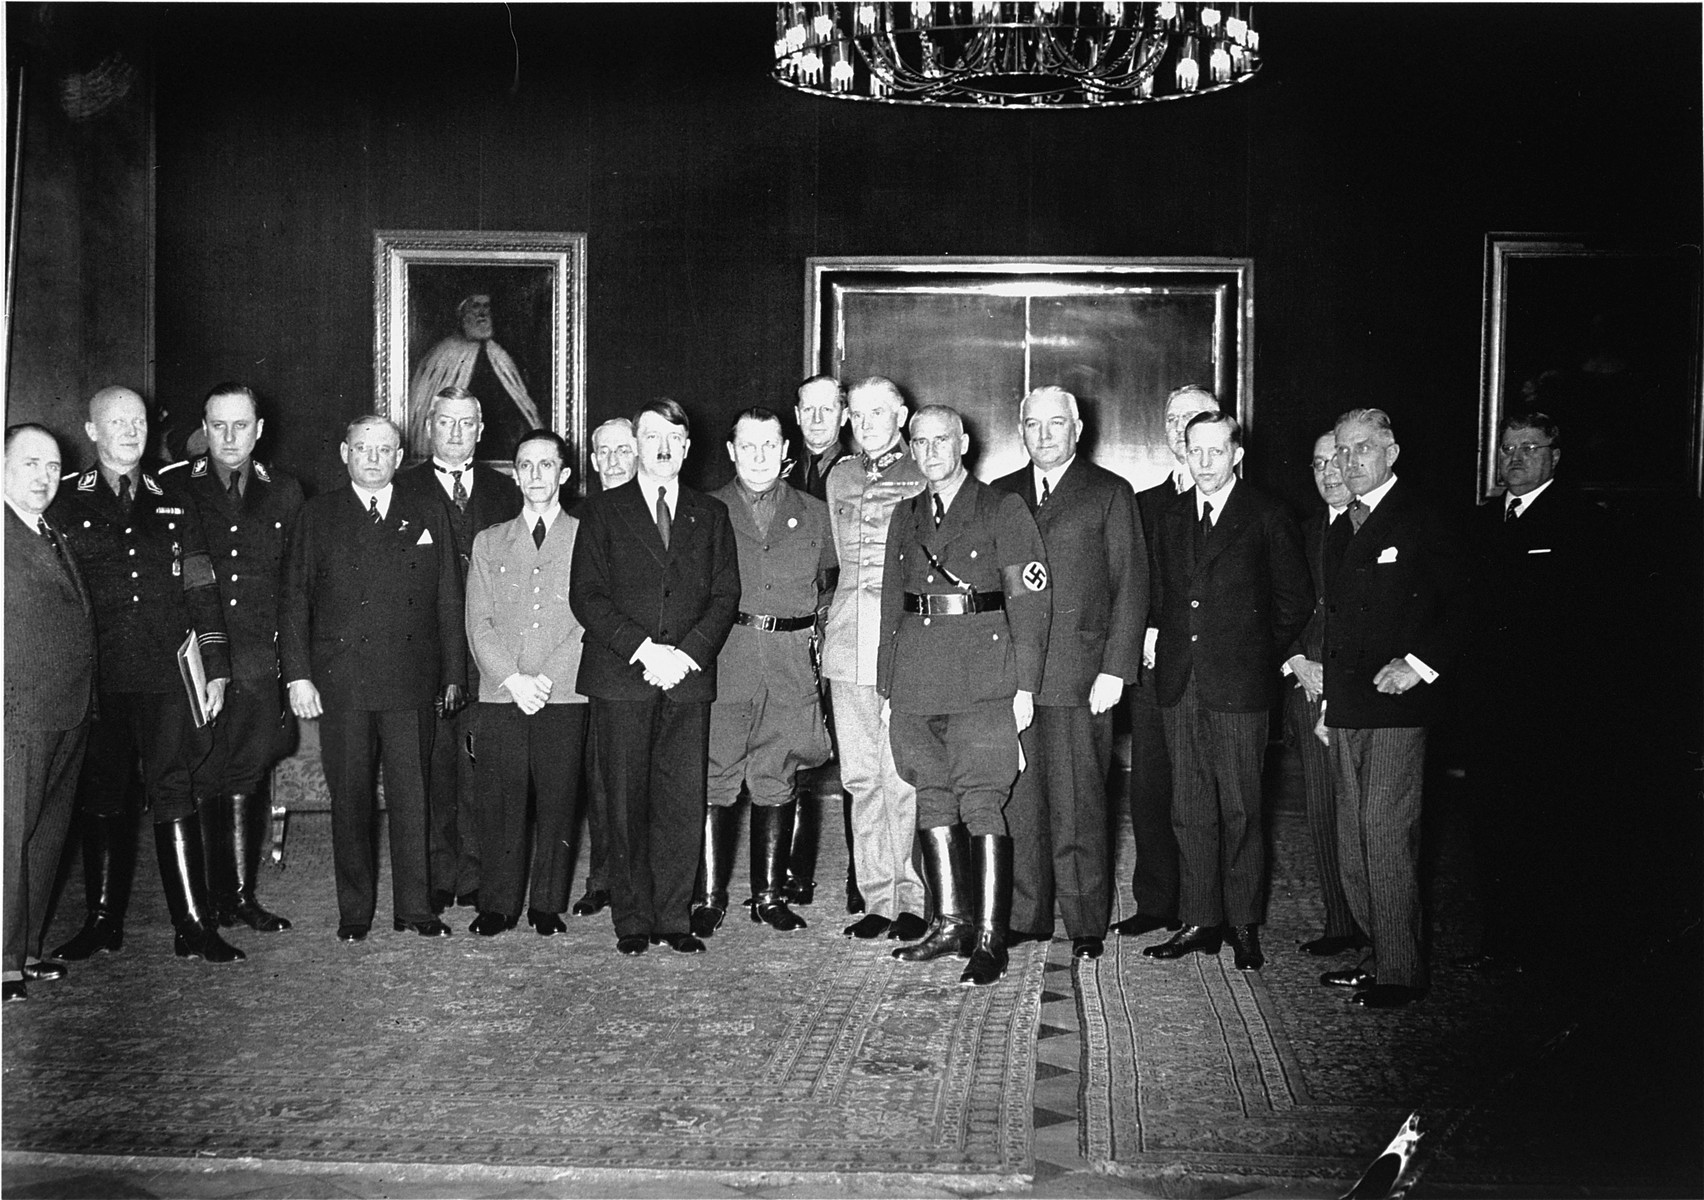 Adolf Hitler poses with members of his new government soon after his appointment as Chancellor.  Standing (from left to right) are Walther Funk, Hans Heinrich Lammers, Walther Darre, Franz Seldte. Franz Guertner. Joseph Goebbels. Paul von Eltz-Ruebenach, Adolf Hitler; Hermann Goering, Kurt Schmitt, Werner von Blomberg, Wilhelm Frick, Constantin Freiherr von Neurath, Hjalmar Schacht, Lutz Graf Schwerin von Krosigk, Johannes Popitz, Franz von Papen, and Otto Meissner.